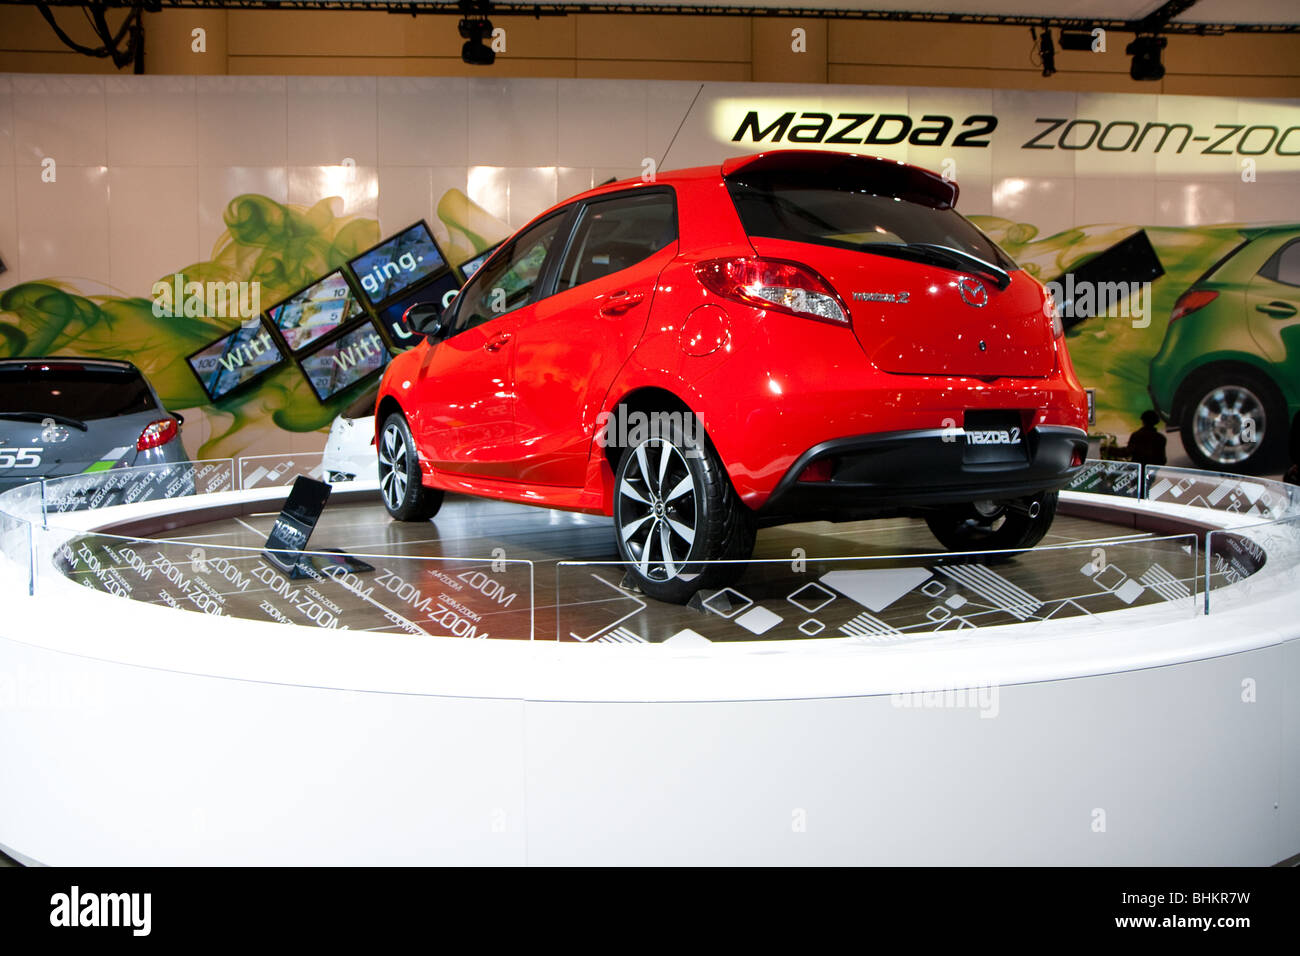 red mazda2 subcompact hatchback 2010 - Stock Image